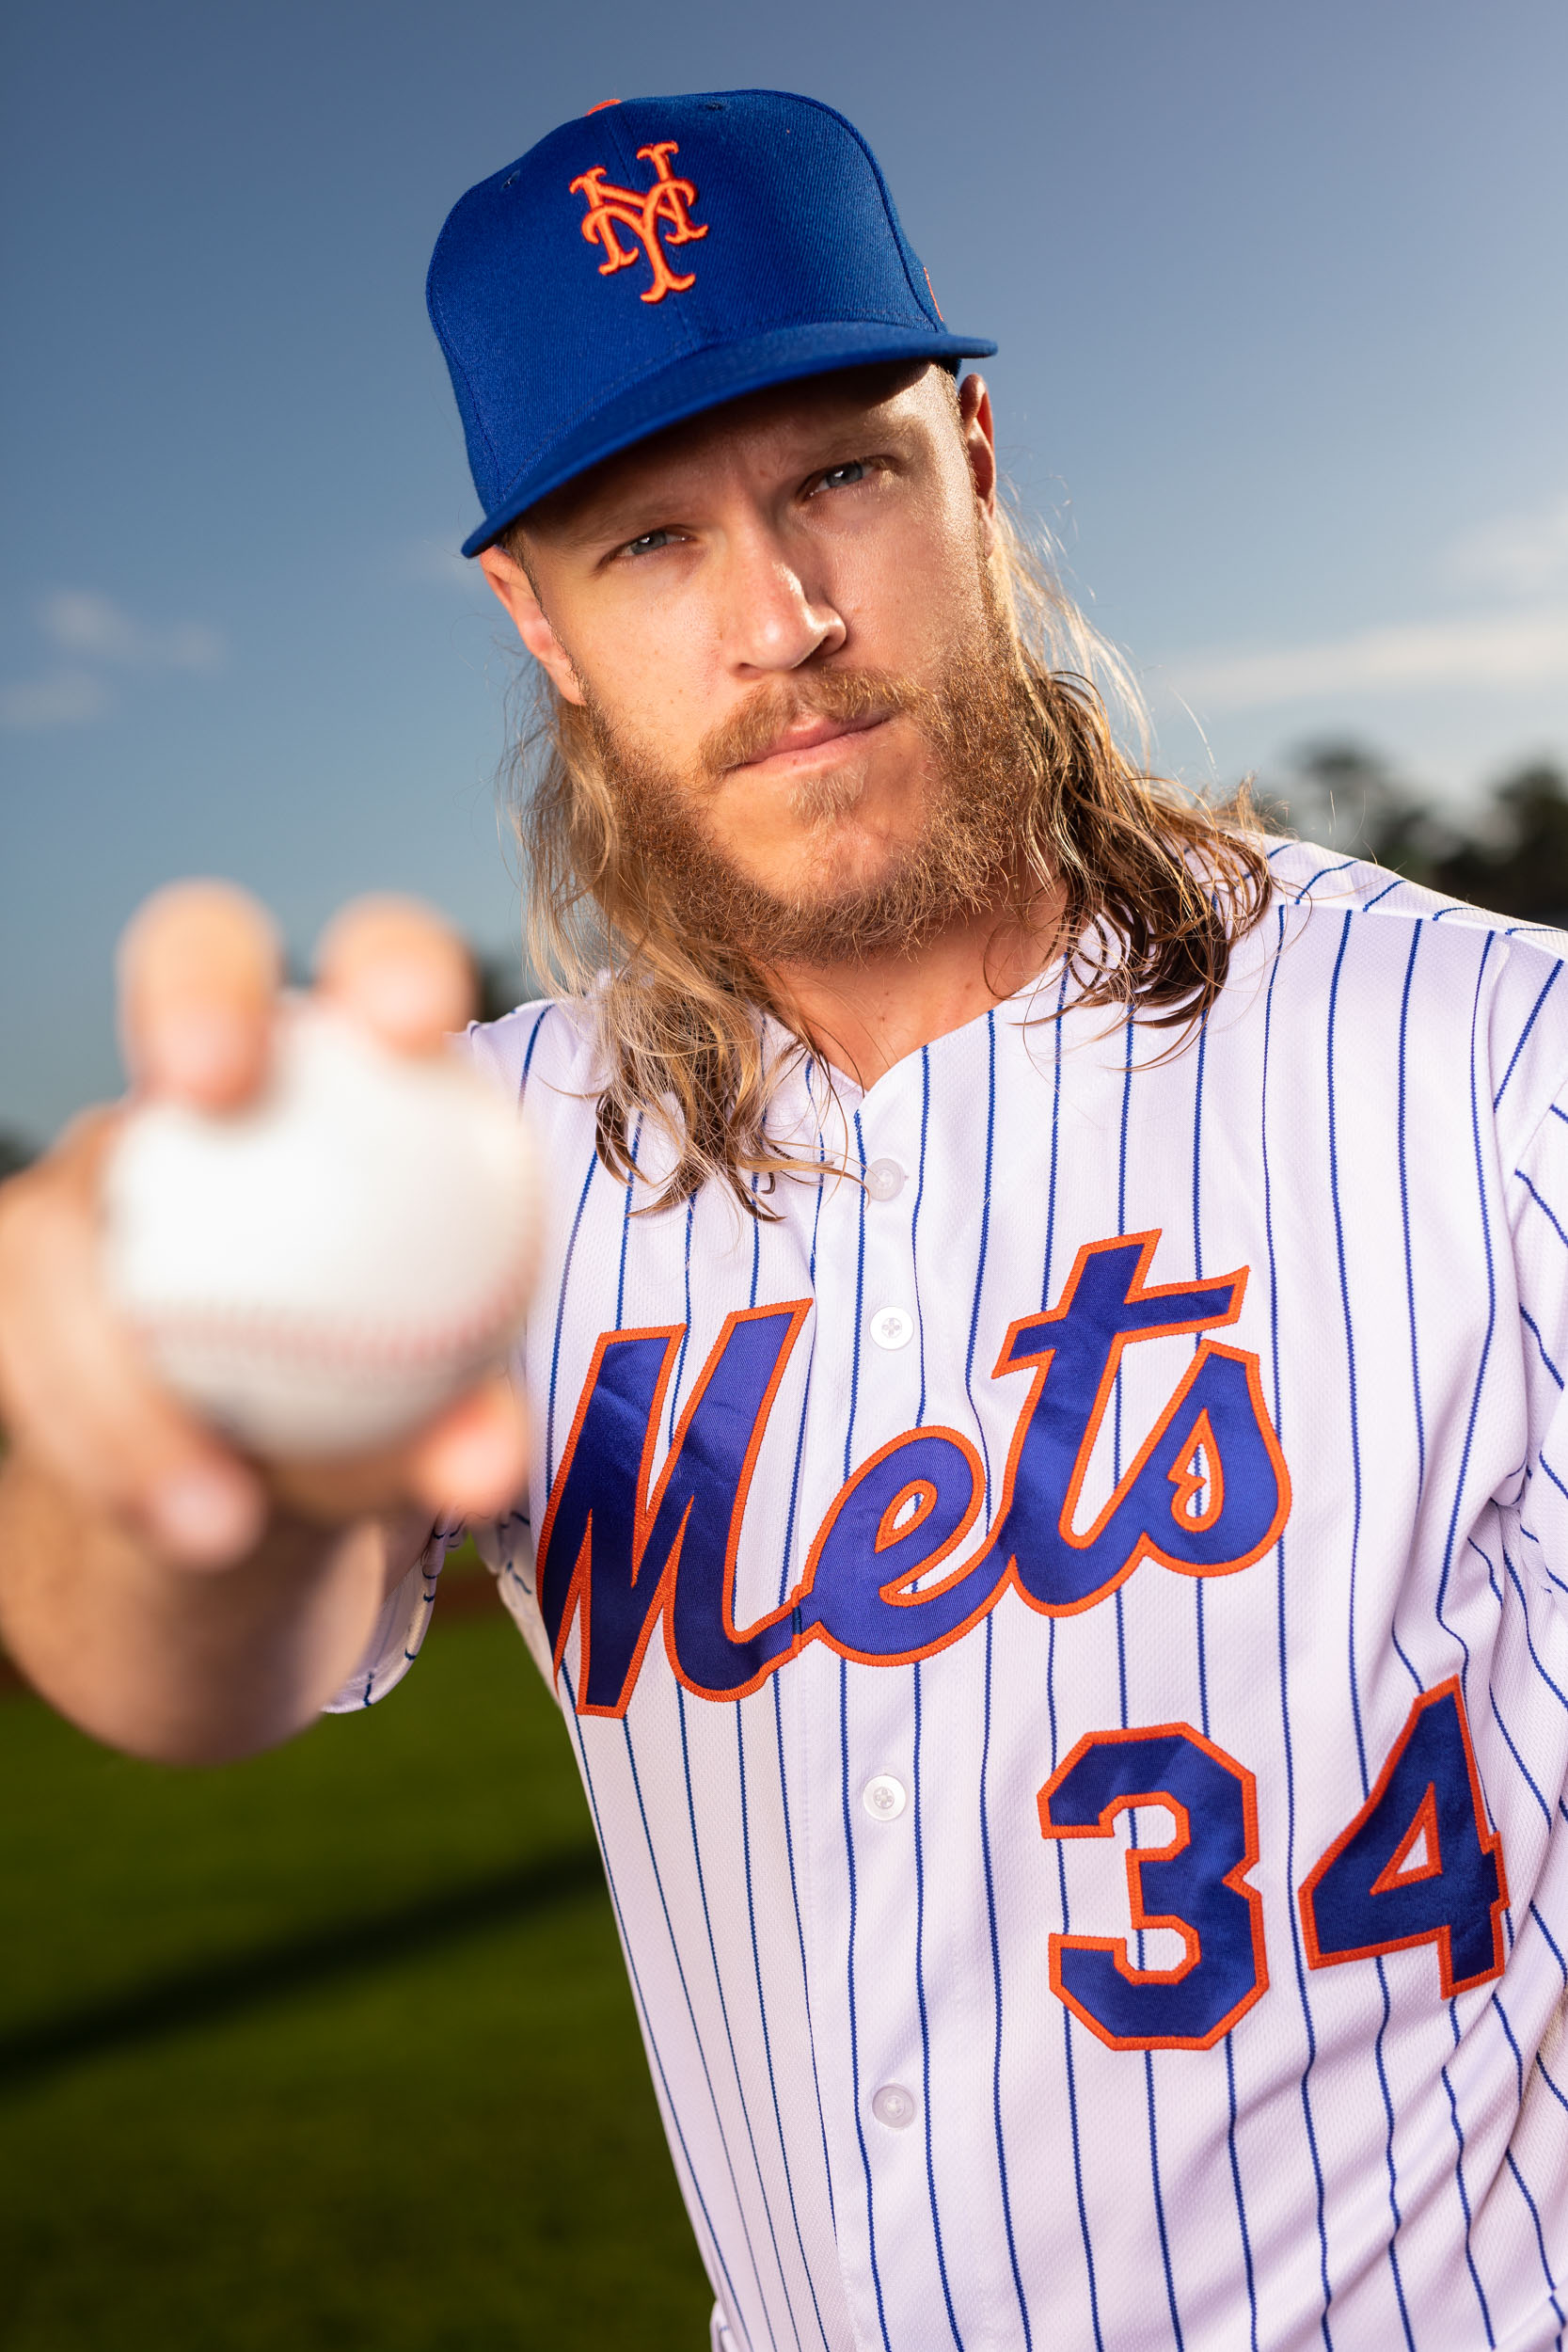 Florida Photography | Noah Syndergaard  for the NY Mets | Steven Martine